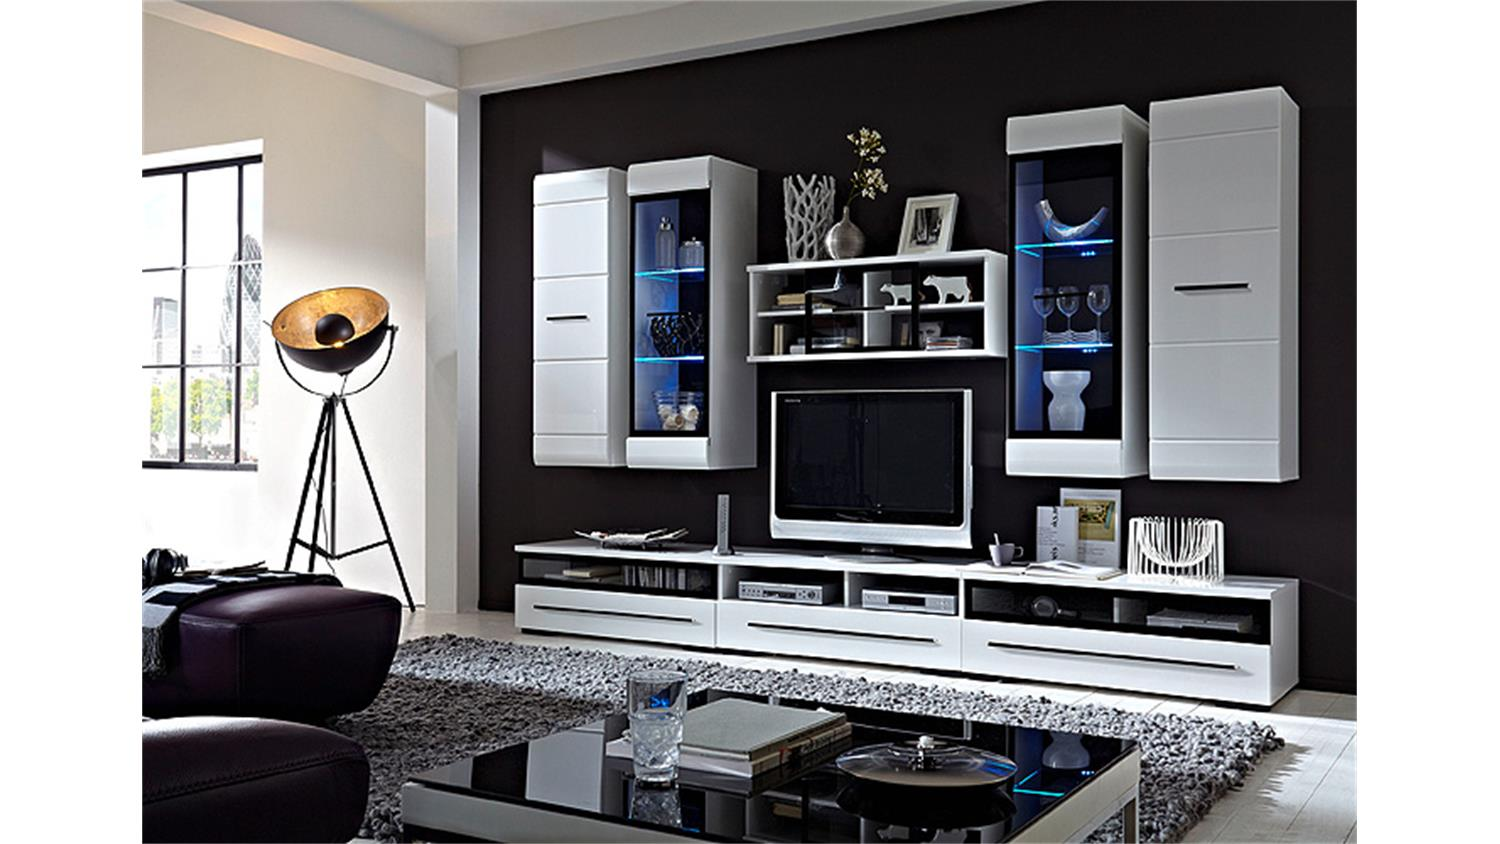 wohnwand hit wei hochglanz lackiert glasrahmen schwarz. Black Bedroom Furniture Sets. Home Design Ideas